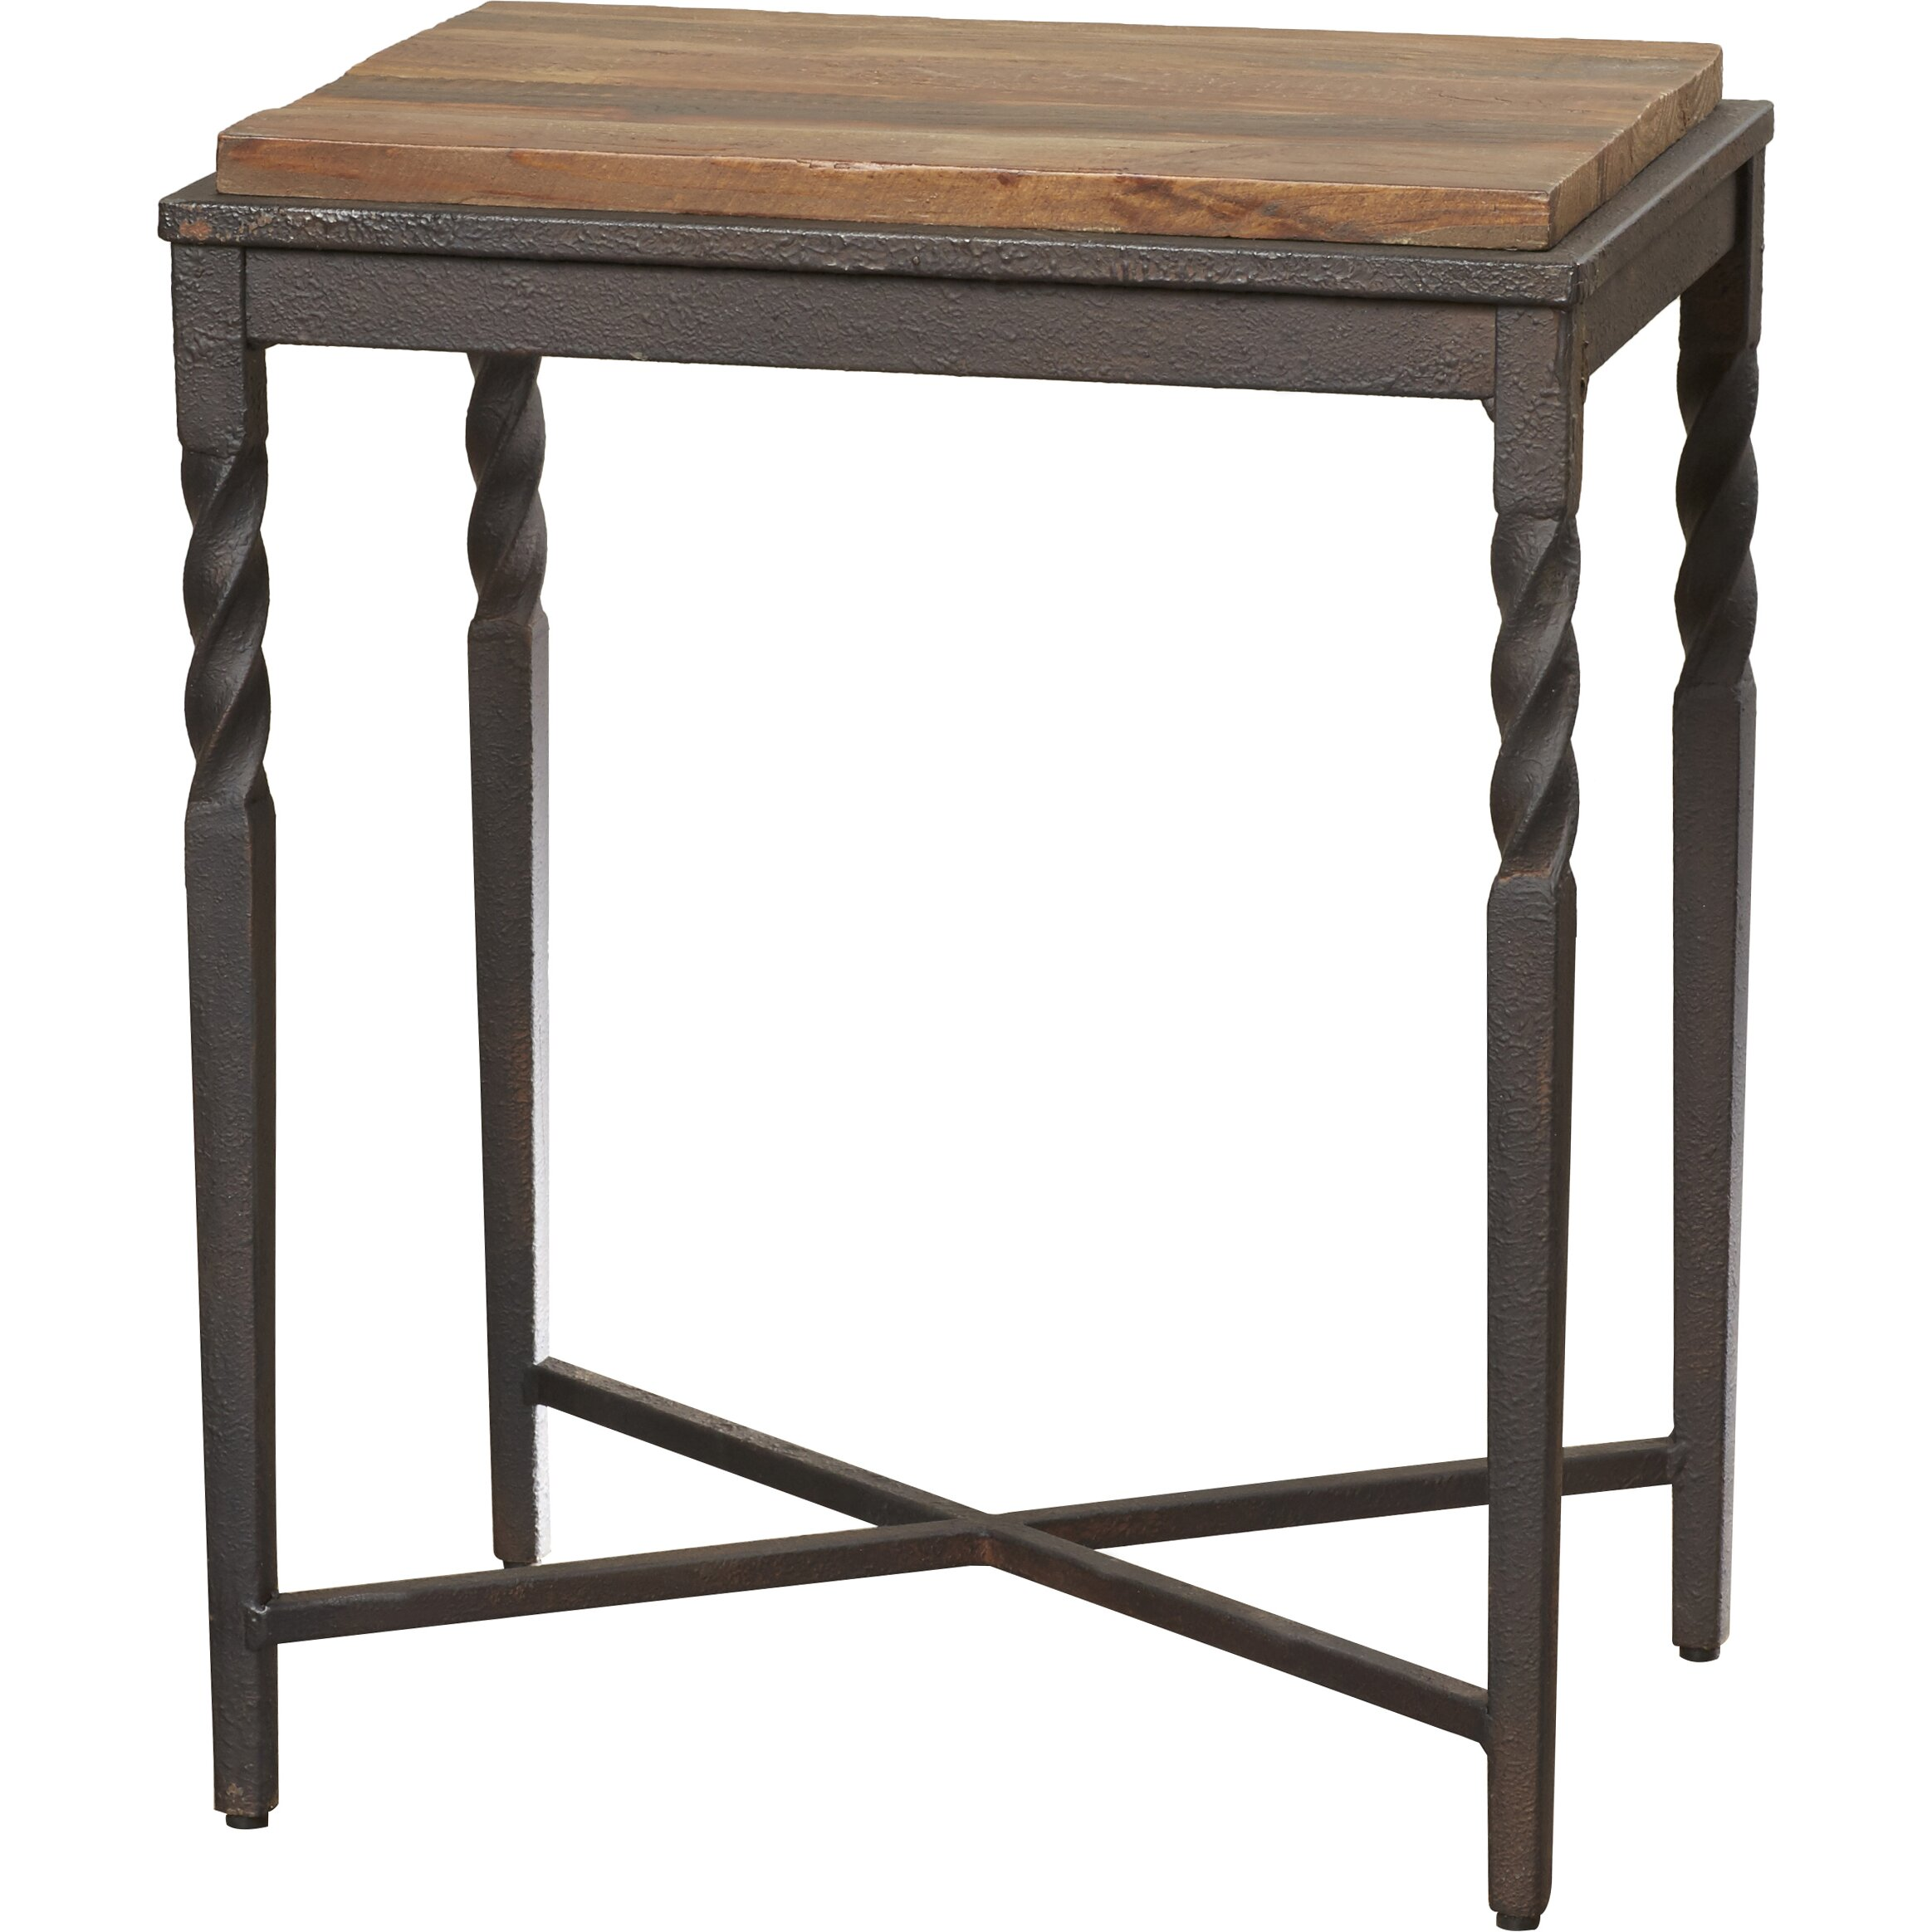 Room Furniture Nesting End Tables Darby Home Co SKU: DBHC3991. Full resolution  photo, nominally Width 2327 Height 2327 pixels, photo with #8A6441.